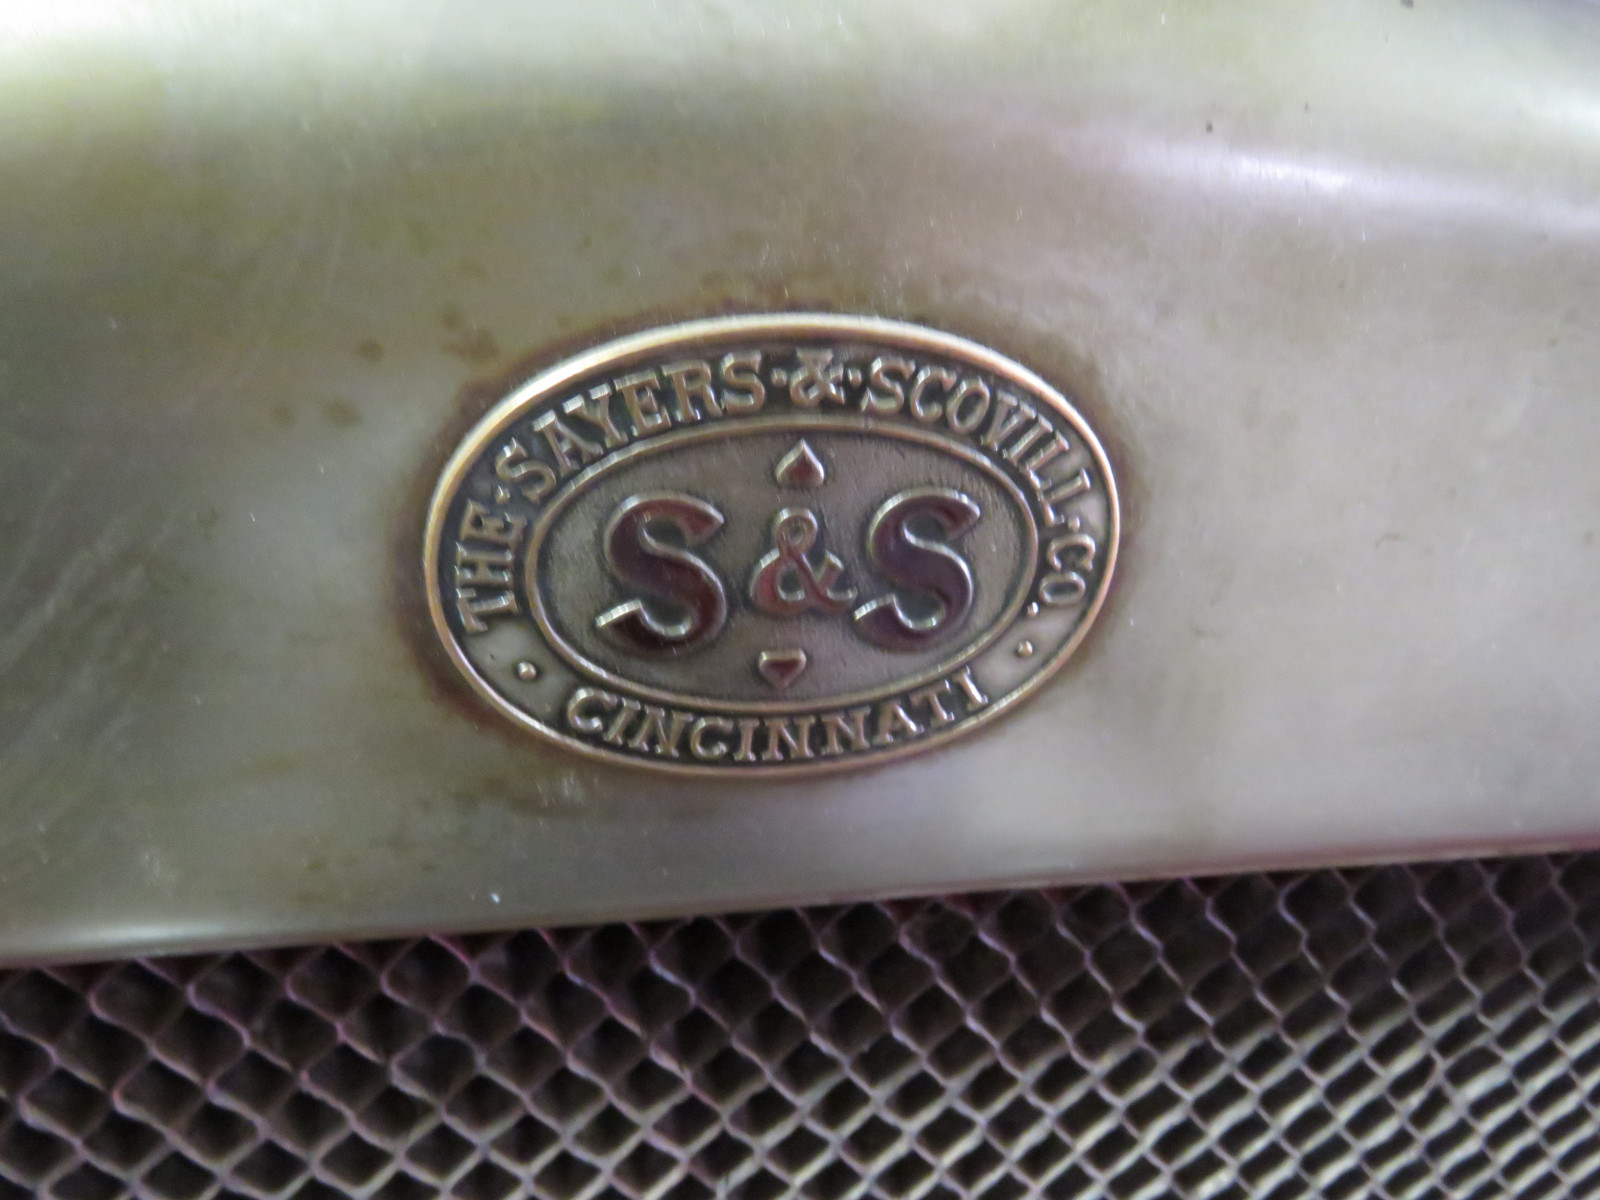 1922 Sayers & Scovill Fire Truck 2604 - Image 6